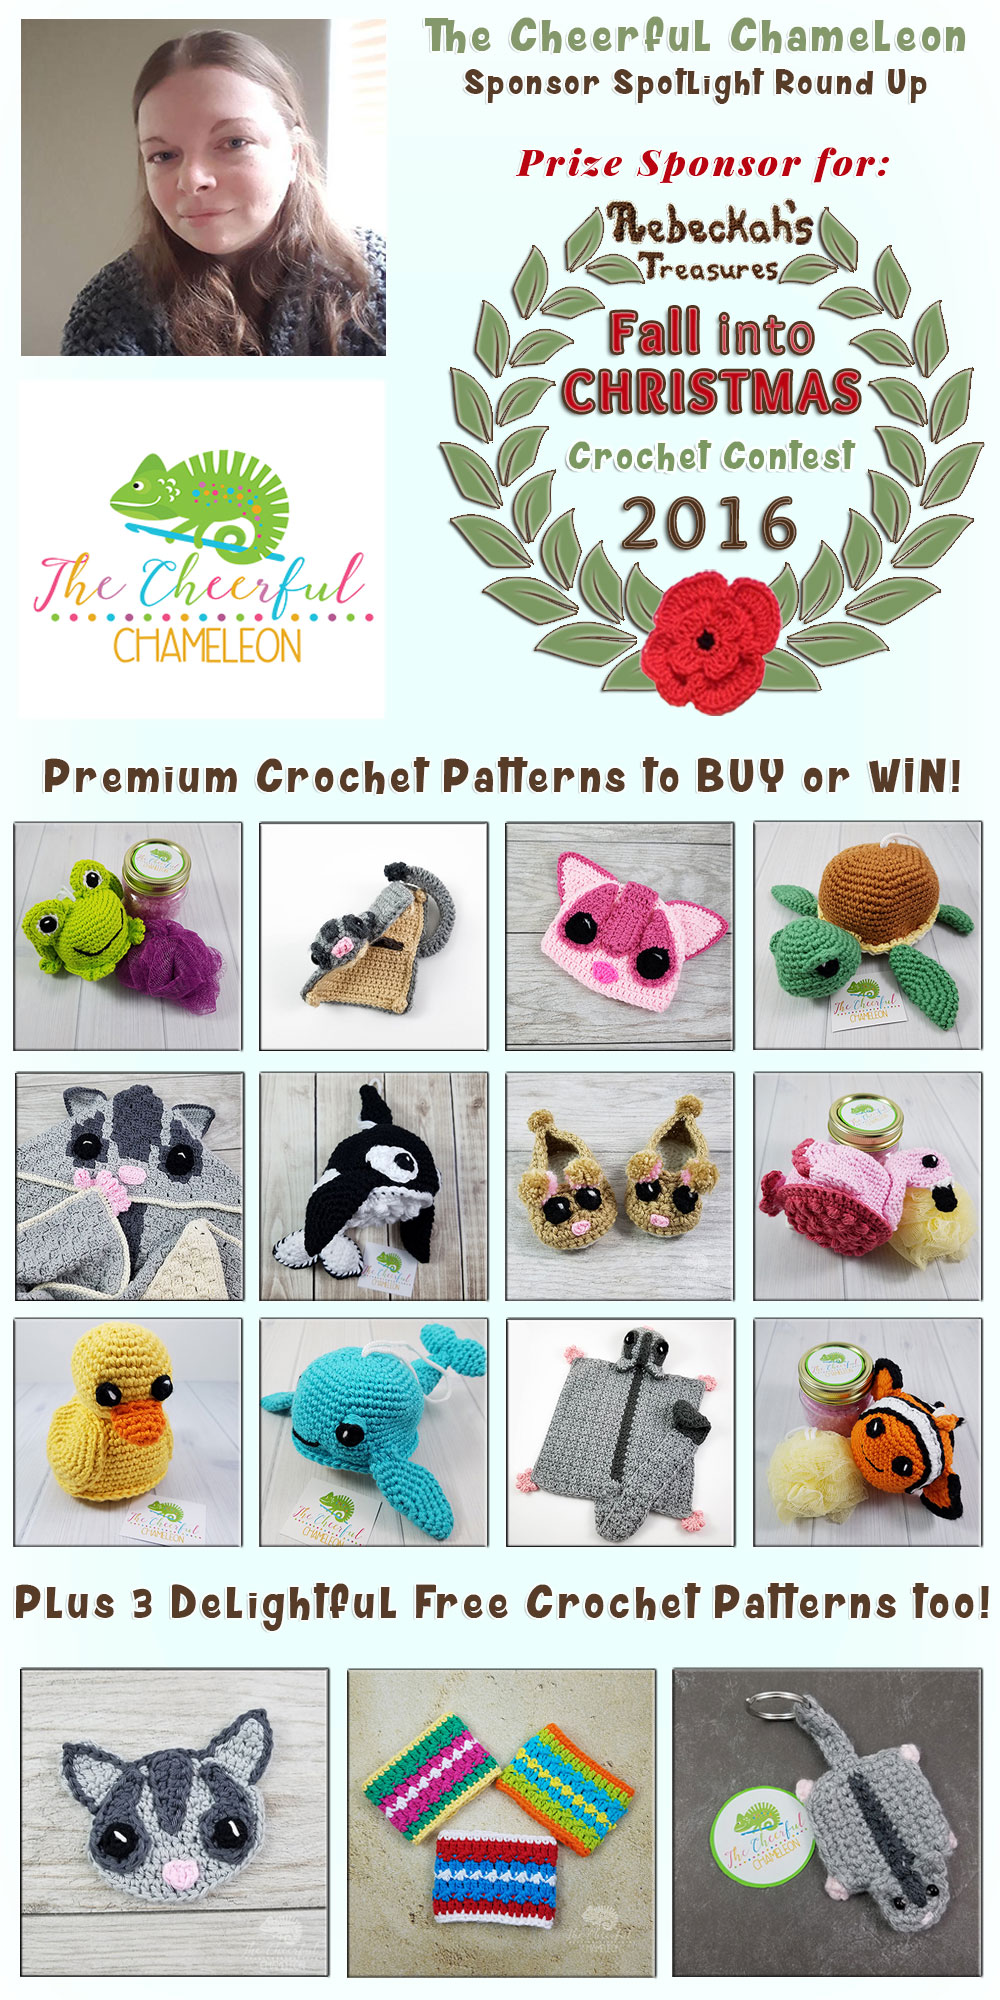 The Cheerful Chameleon - Sponsor Spotlight Round Up via @beckastreasures | 12 Premium + 3 #FREE Crochet Patterns by @The Cheerful Chameleon | #fallintochristmas2016 #crochetcontest #spotlight #crochet #roundup